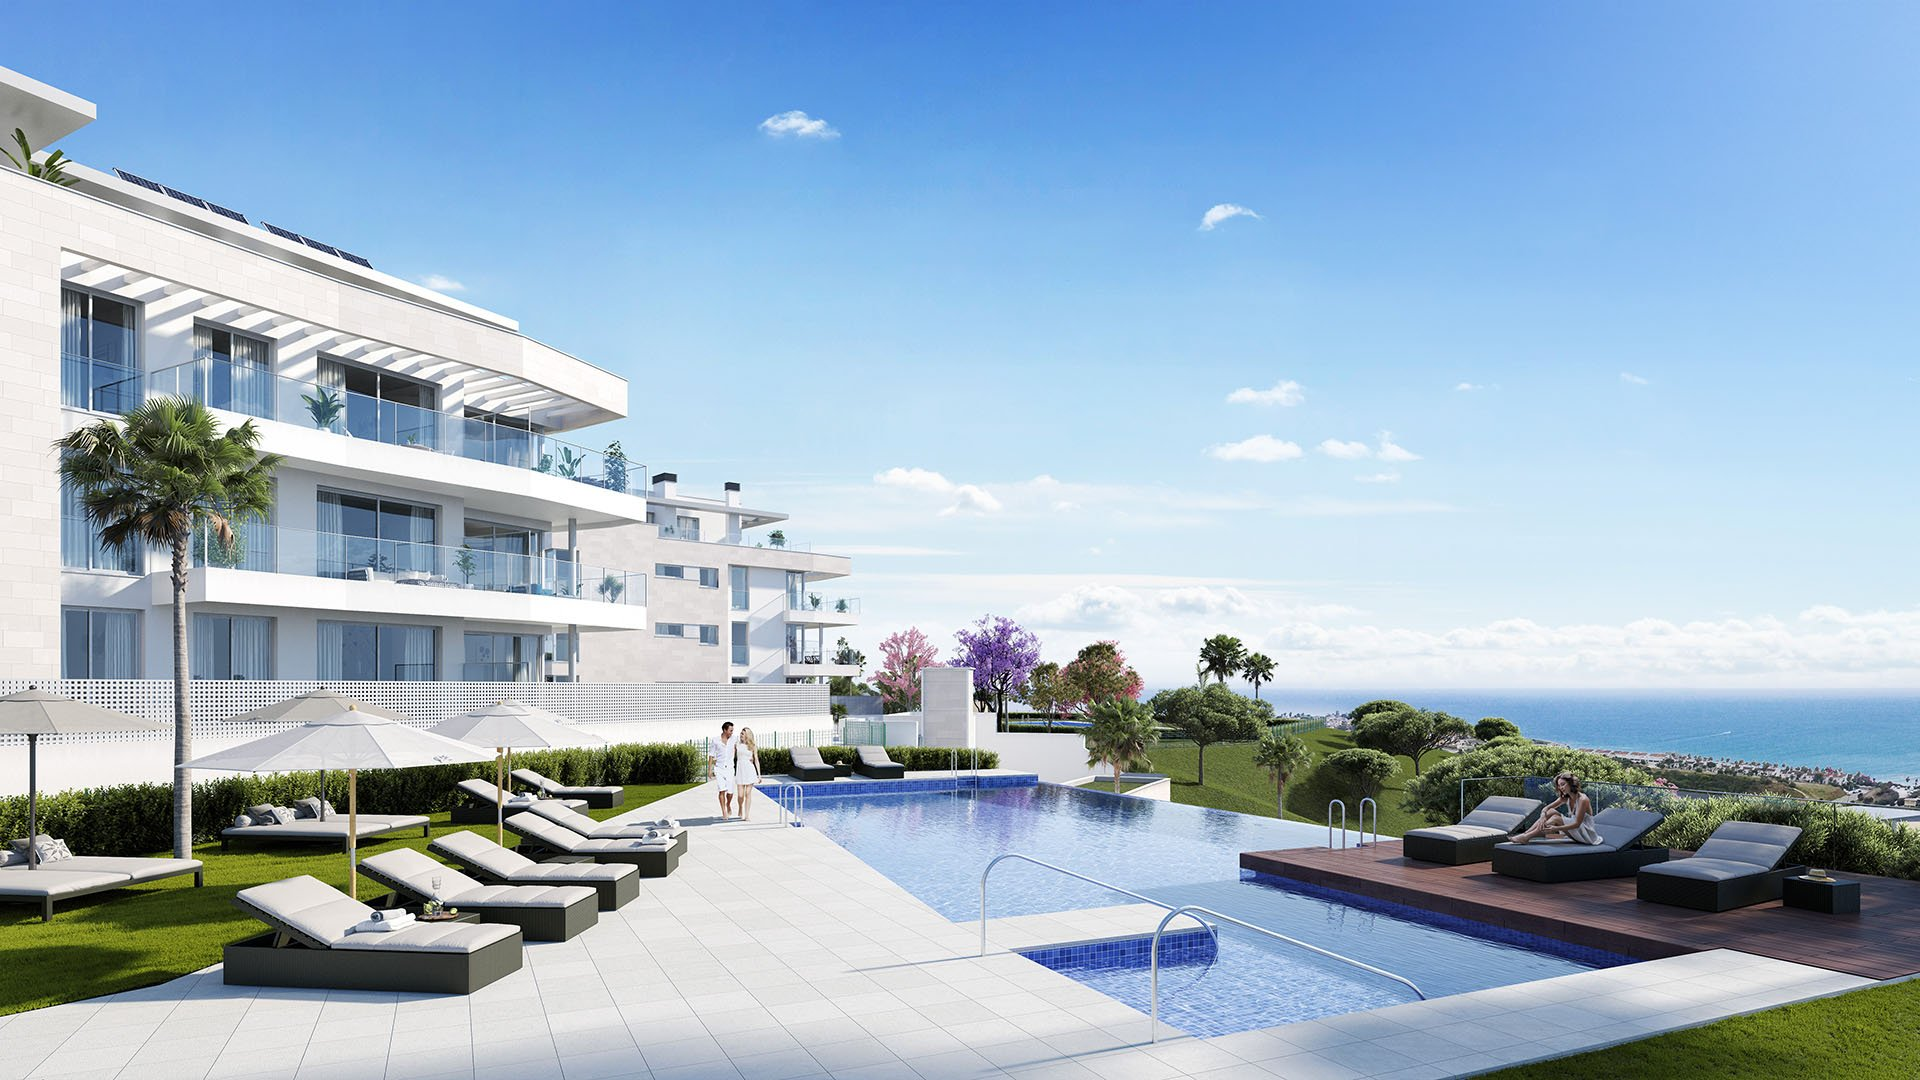 Vitta Nature: Apartments in Mijas Costa surrounded by nature and stunning sea views